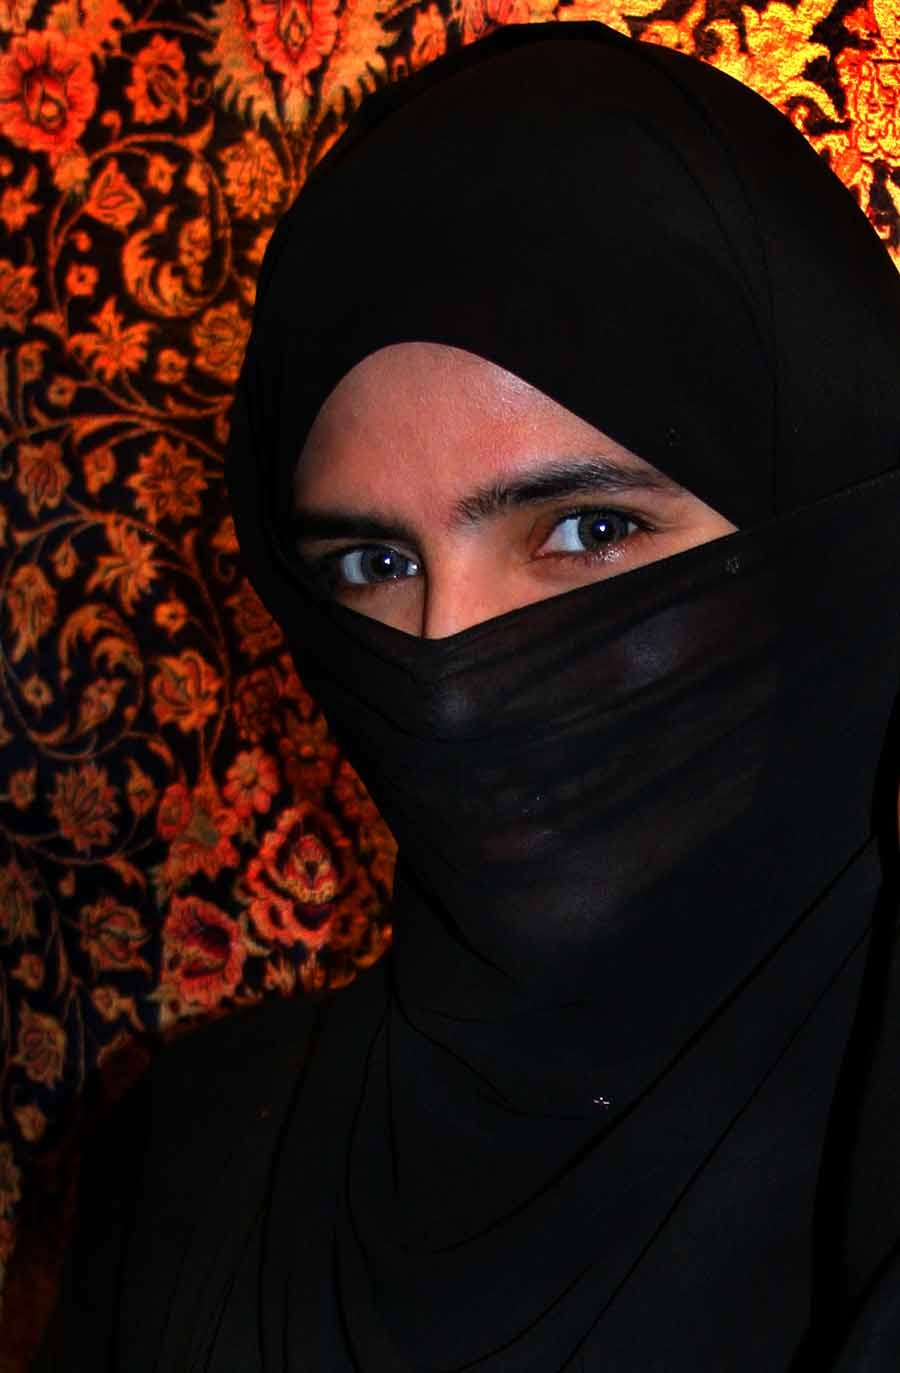 ban niqab in britain essay Banning the niqab harms an open society so does wearing it omer aziz  al azhar university in egypt, the great centre of sunni learning, banned the niqab in 2009 and its head at the time, the .